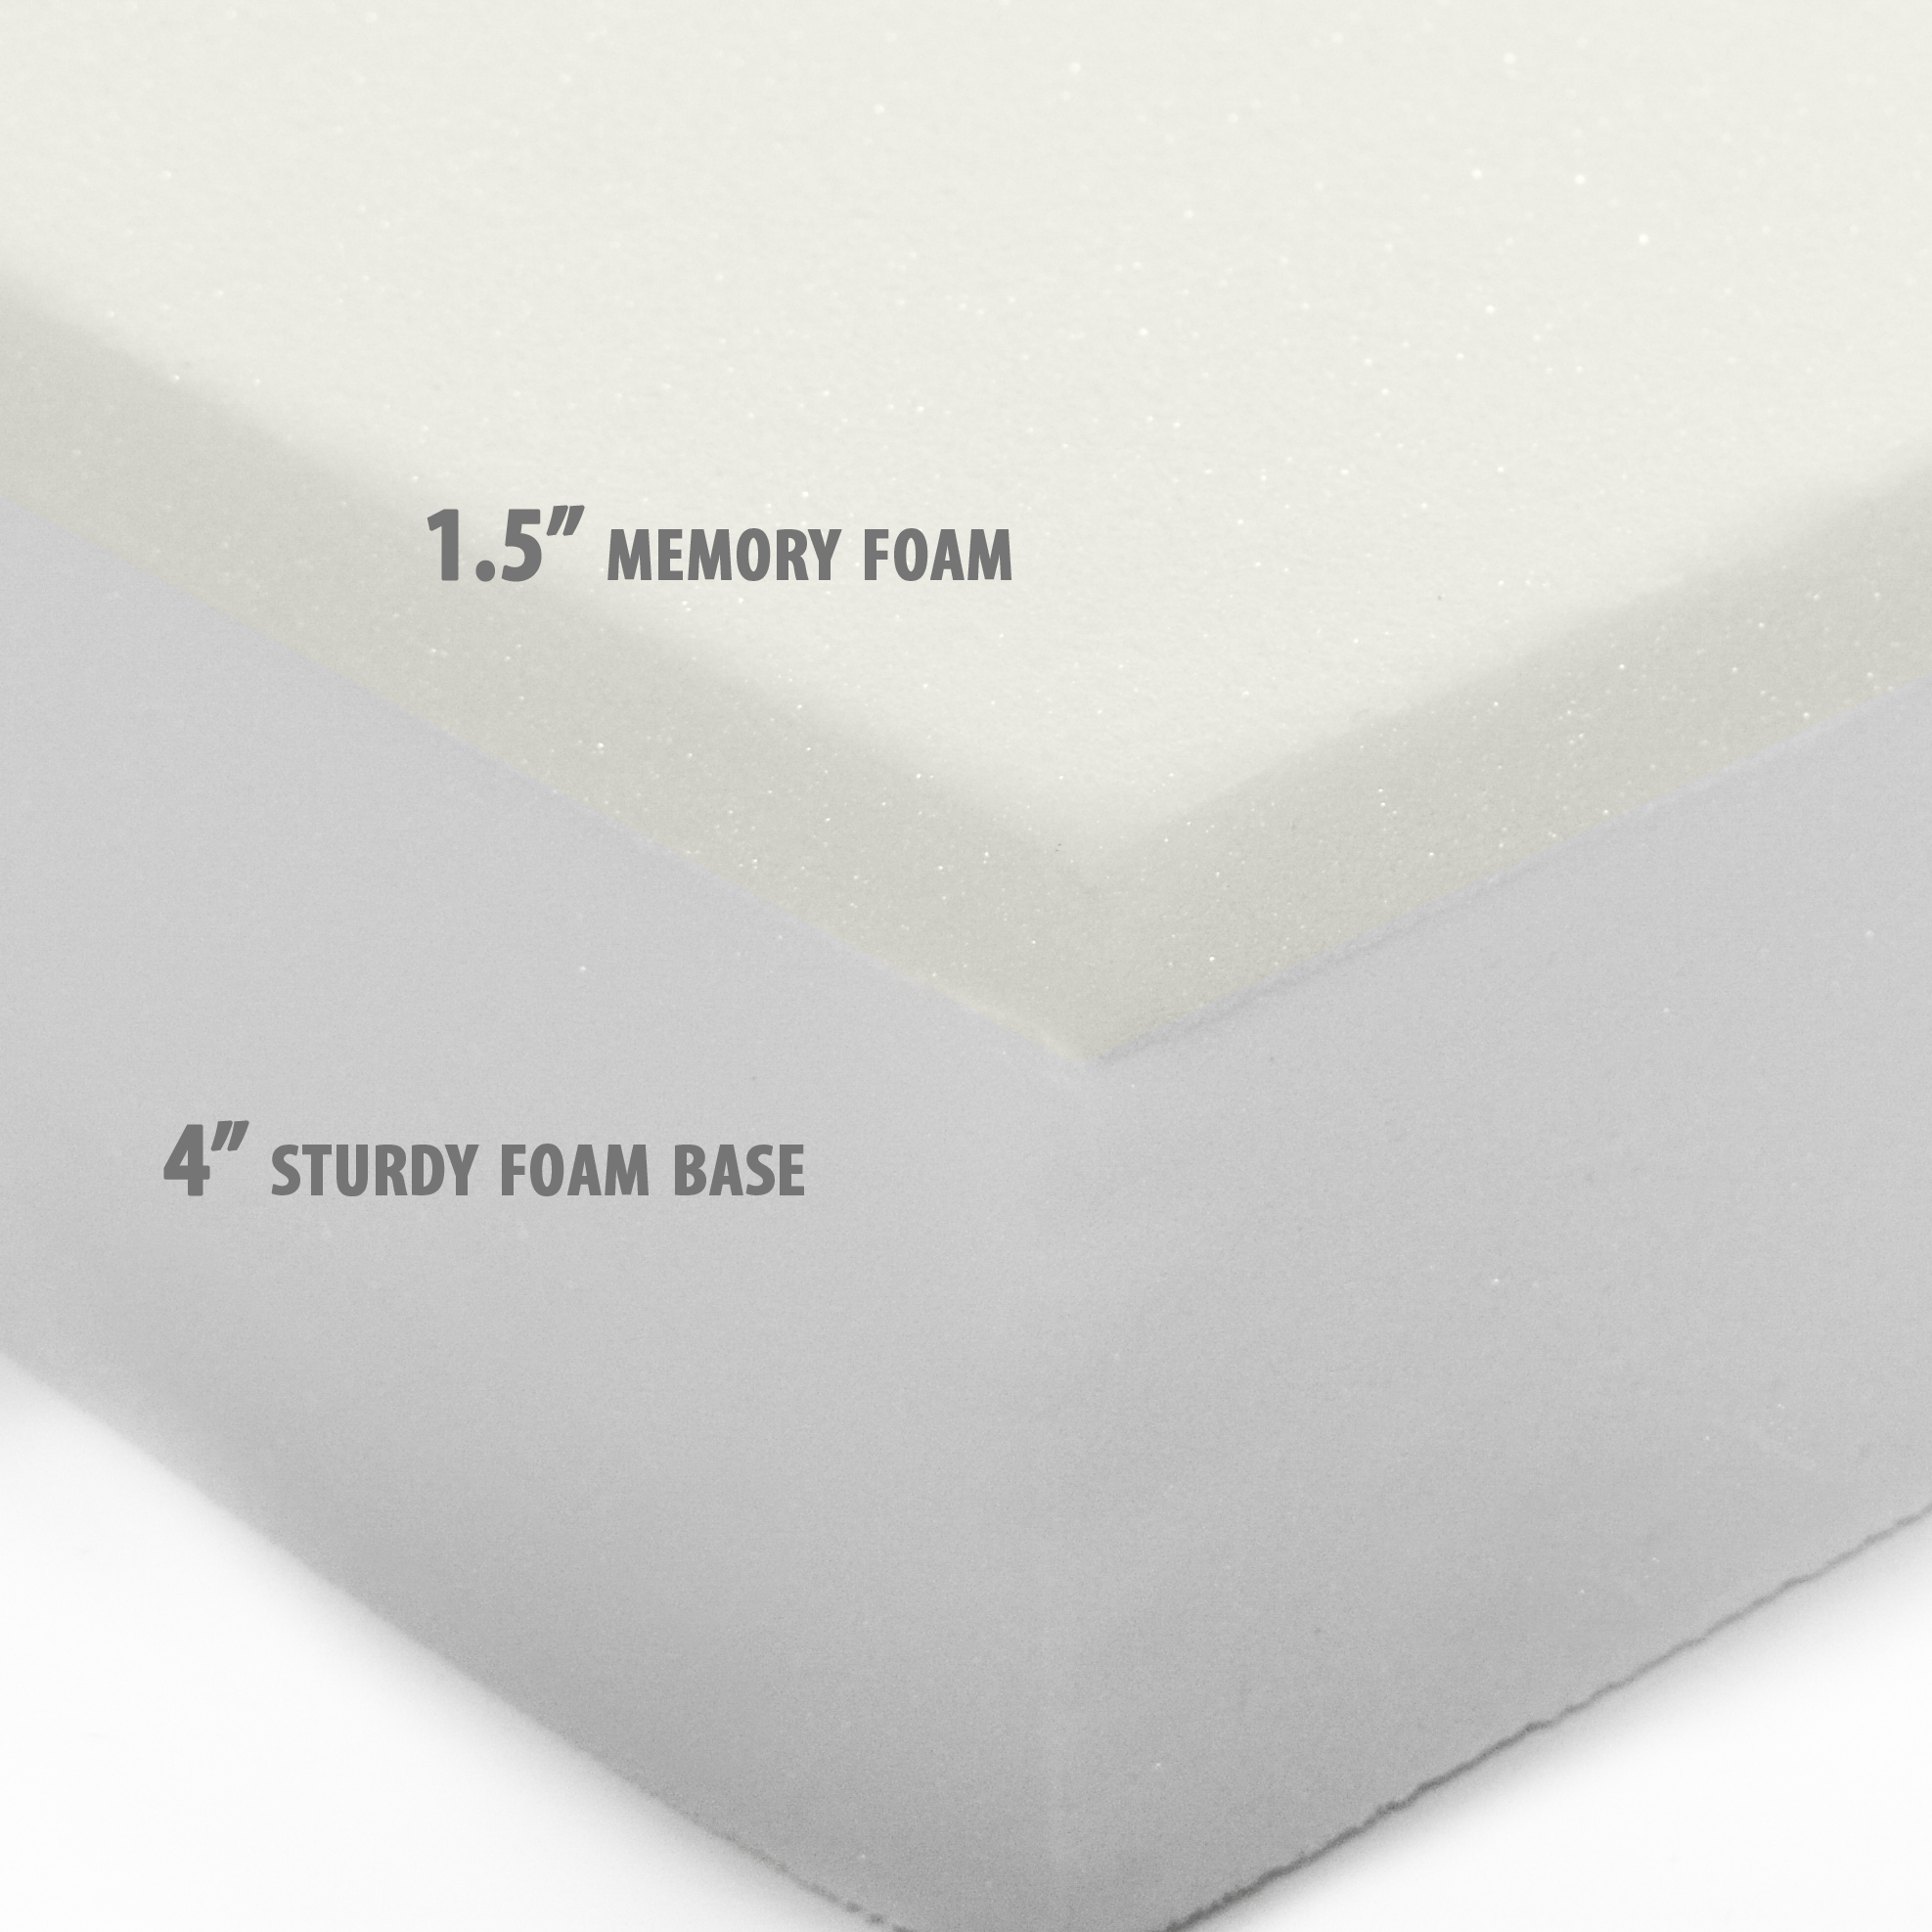 Waterproof CoverPremium Hypoallergenic Milliard Memory Foam Crib Mattress